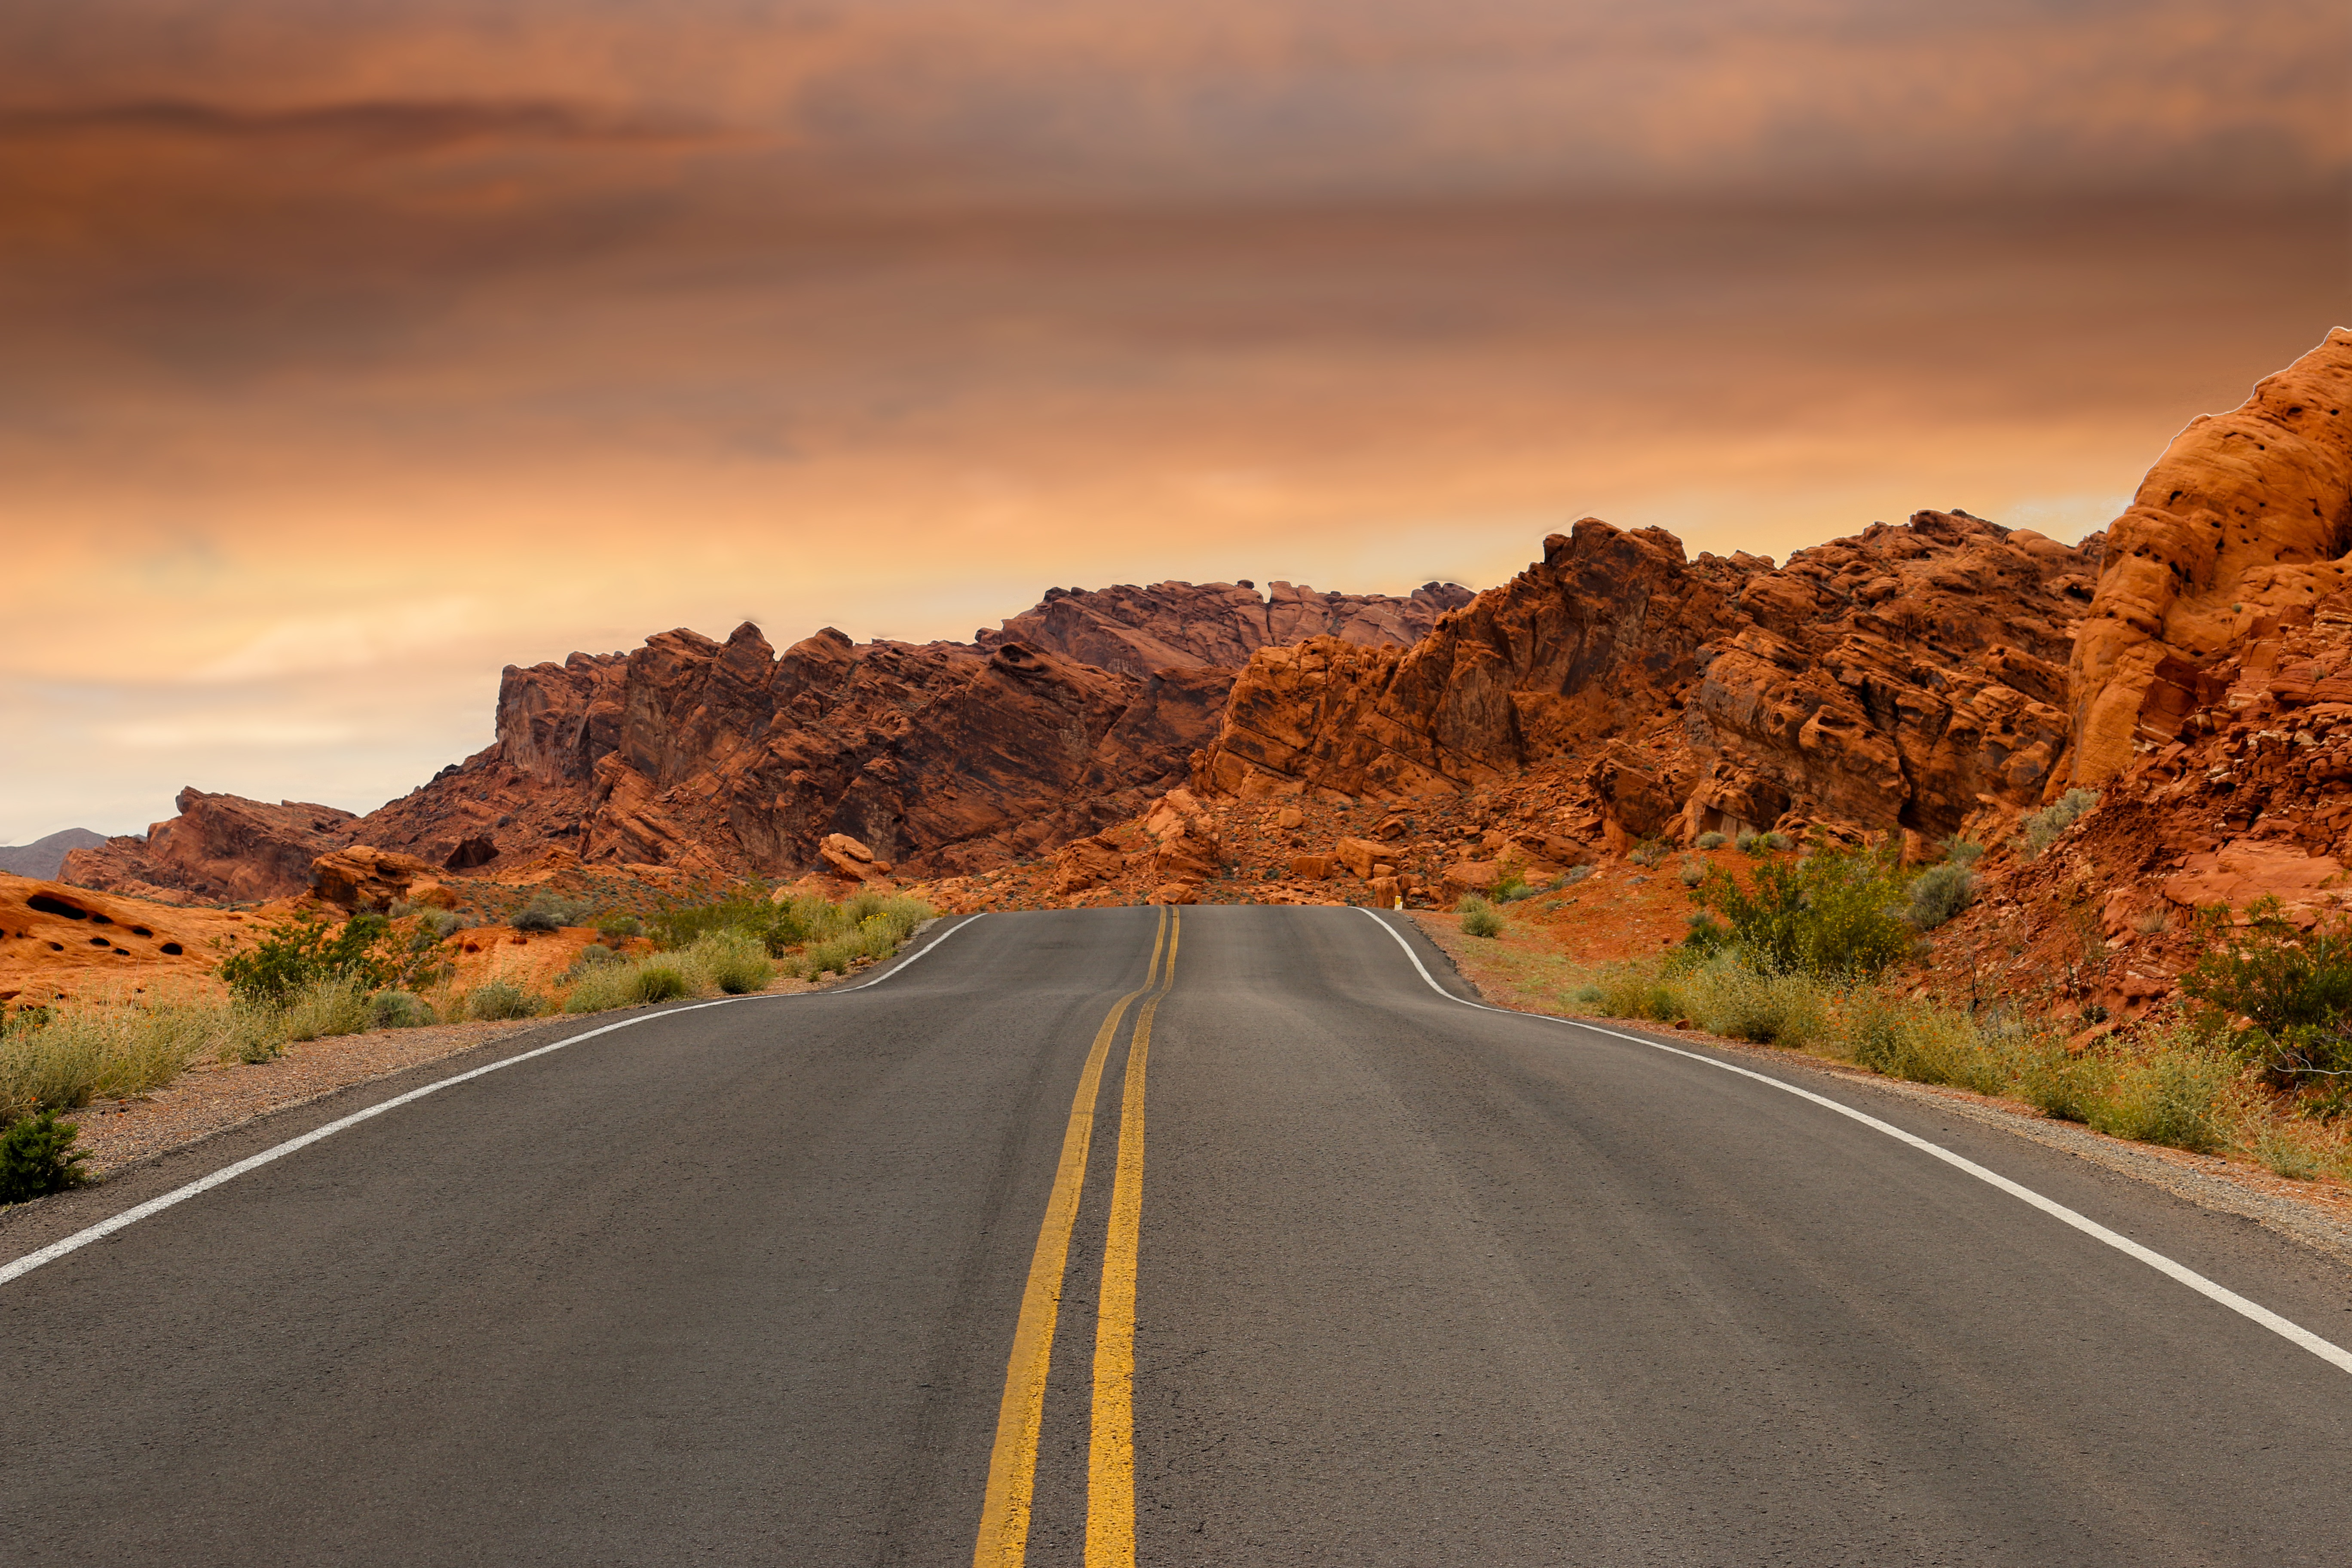 road leading to the sunset